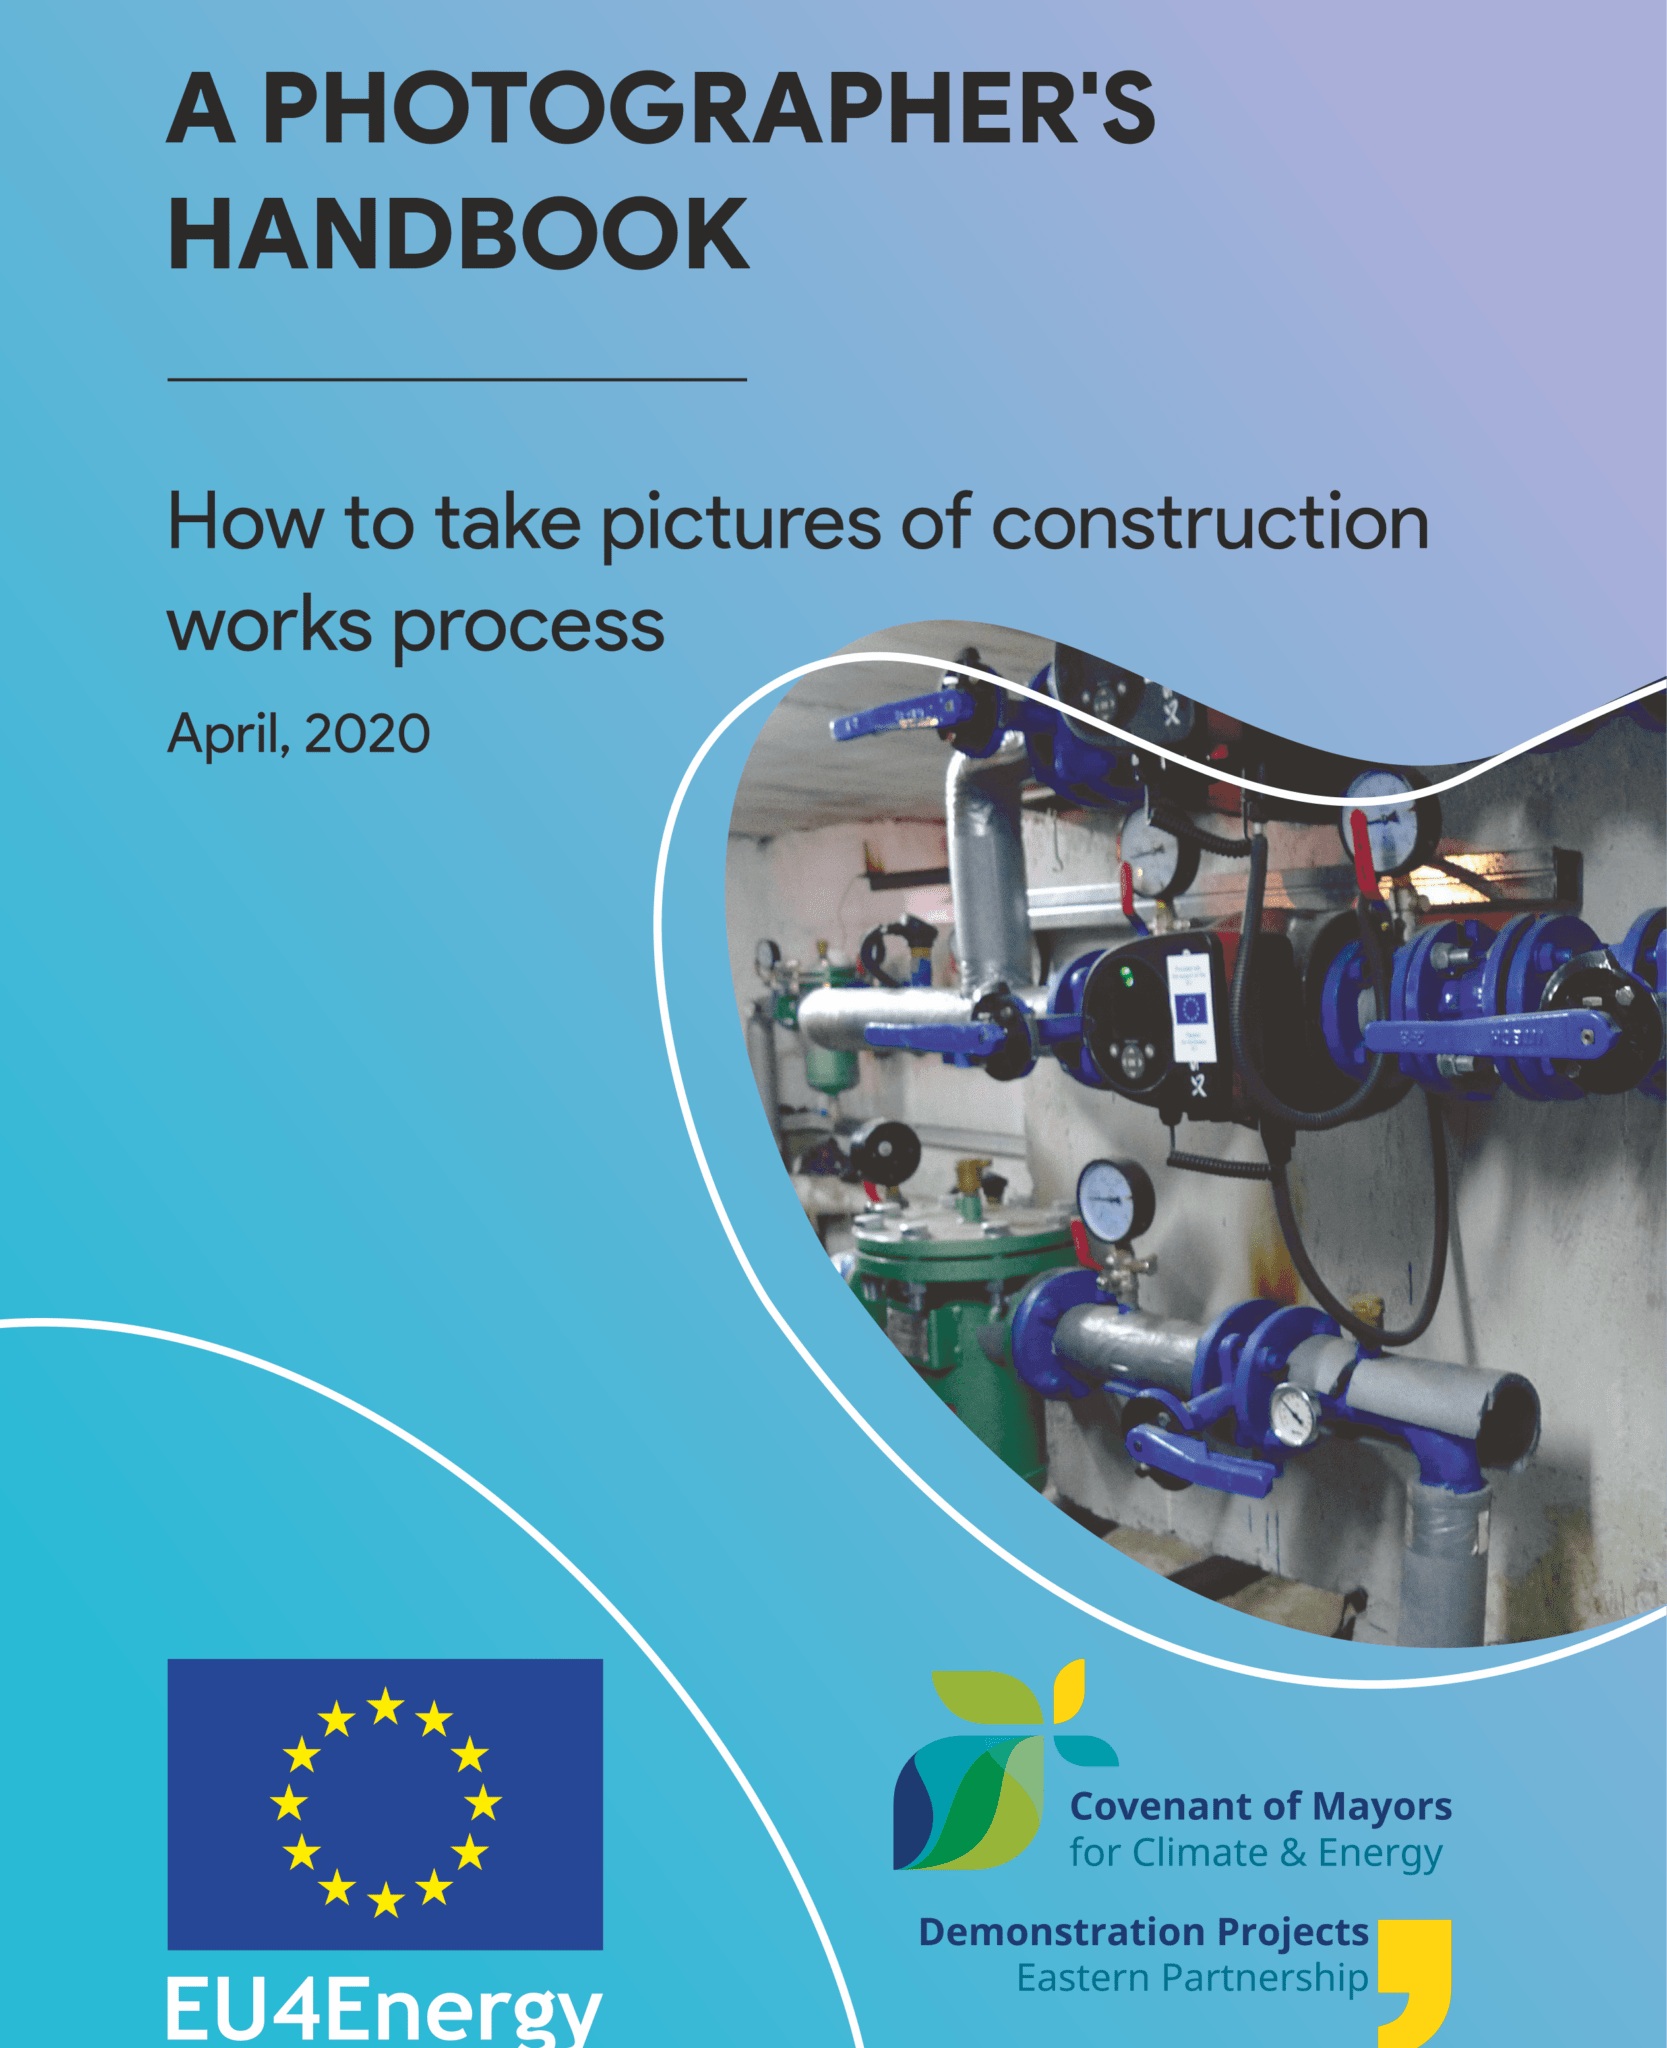 A Photographer's Hand book: How to take pictures of construction works process